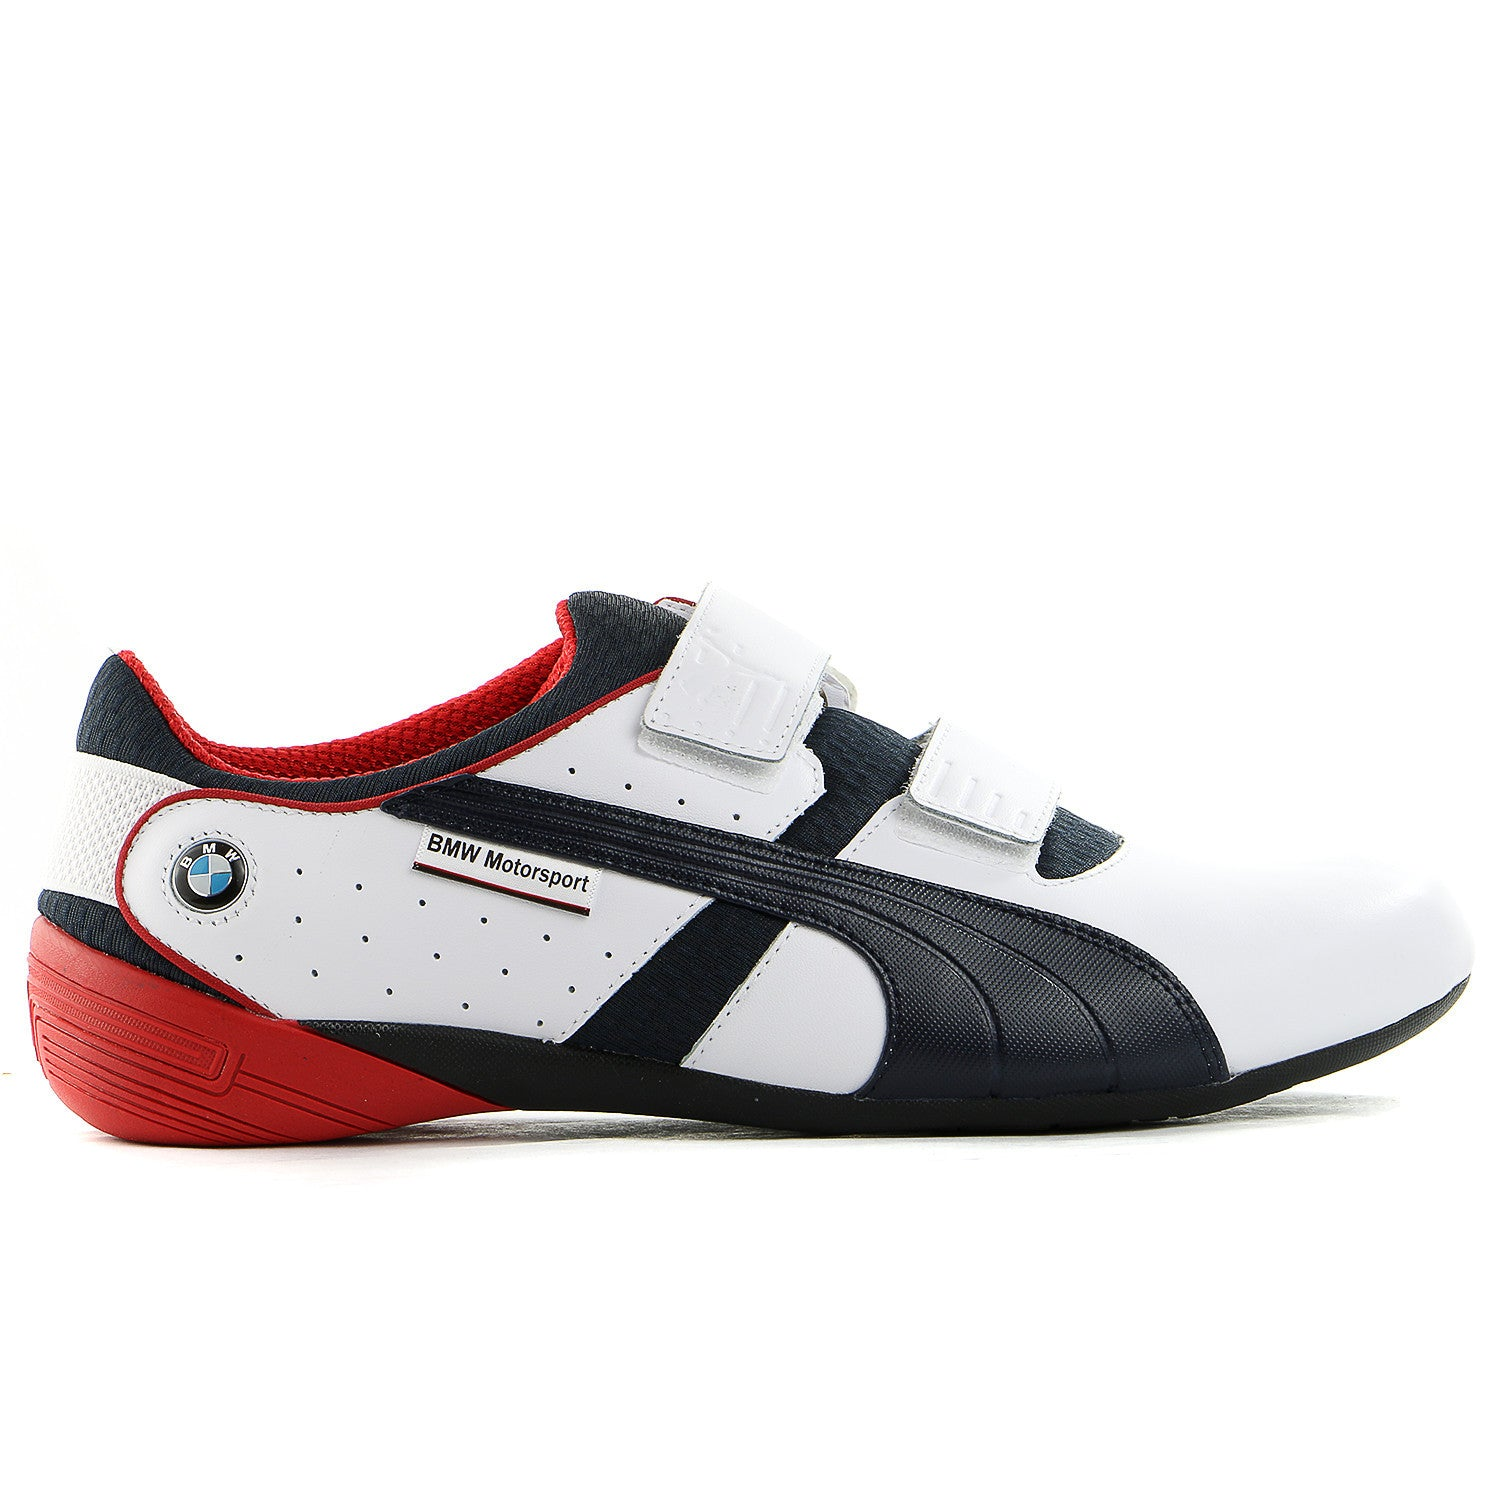 580eaf4adf356 Puma BMW Motorsport Nyter 2 Fashion Sneaker Shoe - White BMW Team Blue -  Mens